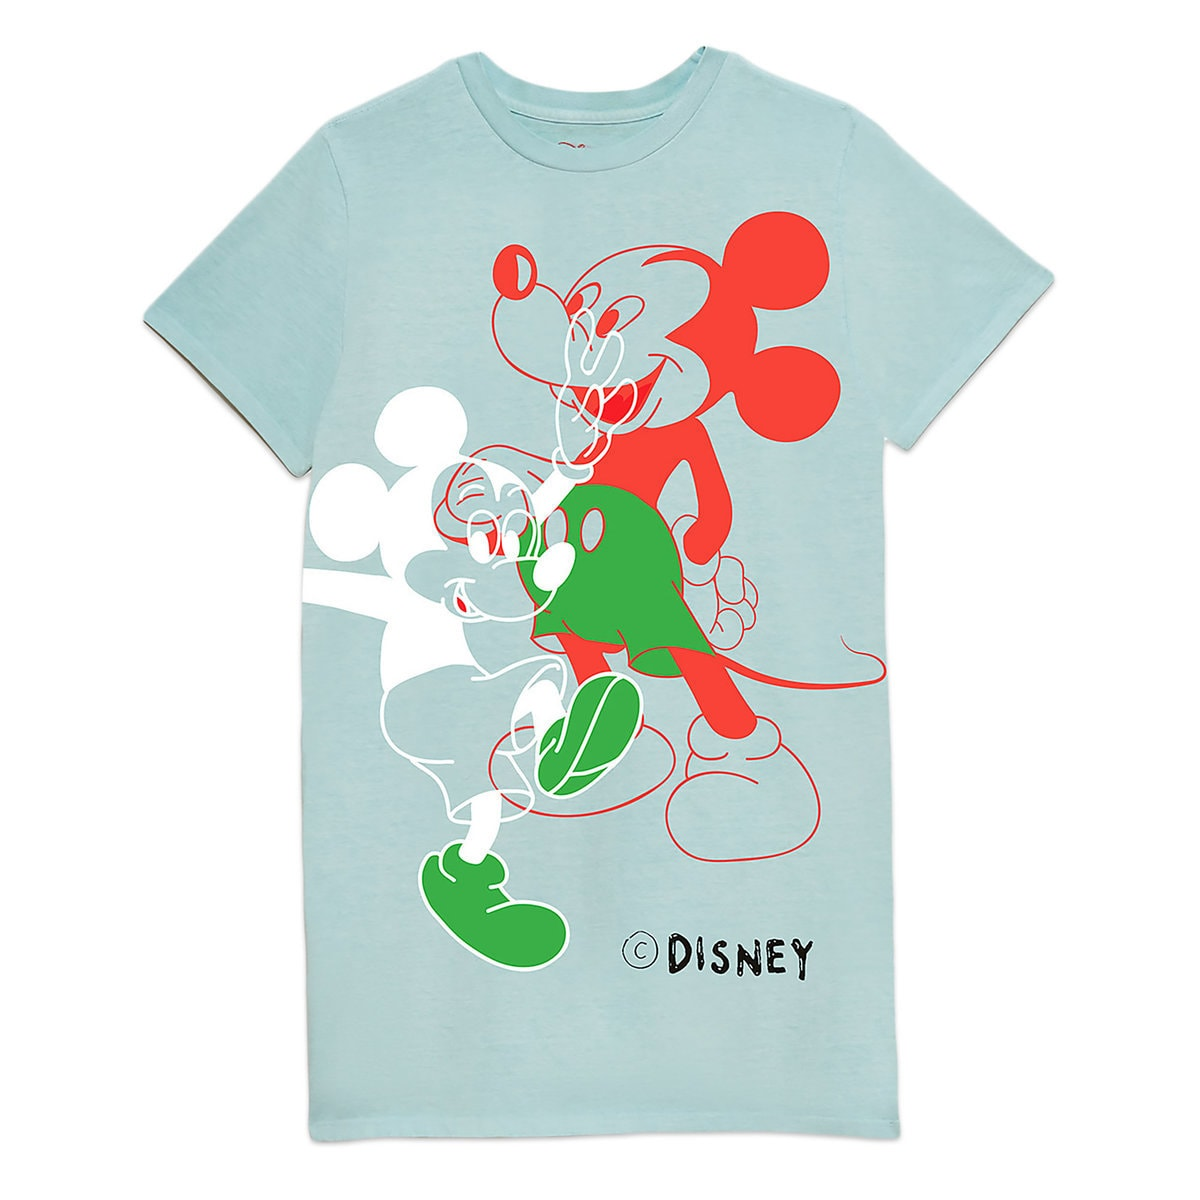 6ca61b89bacfc8 Product Image of Mickey Mouse T-Shirt Dress for Women by Opening Ceremony    1